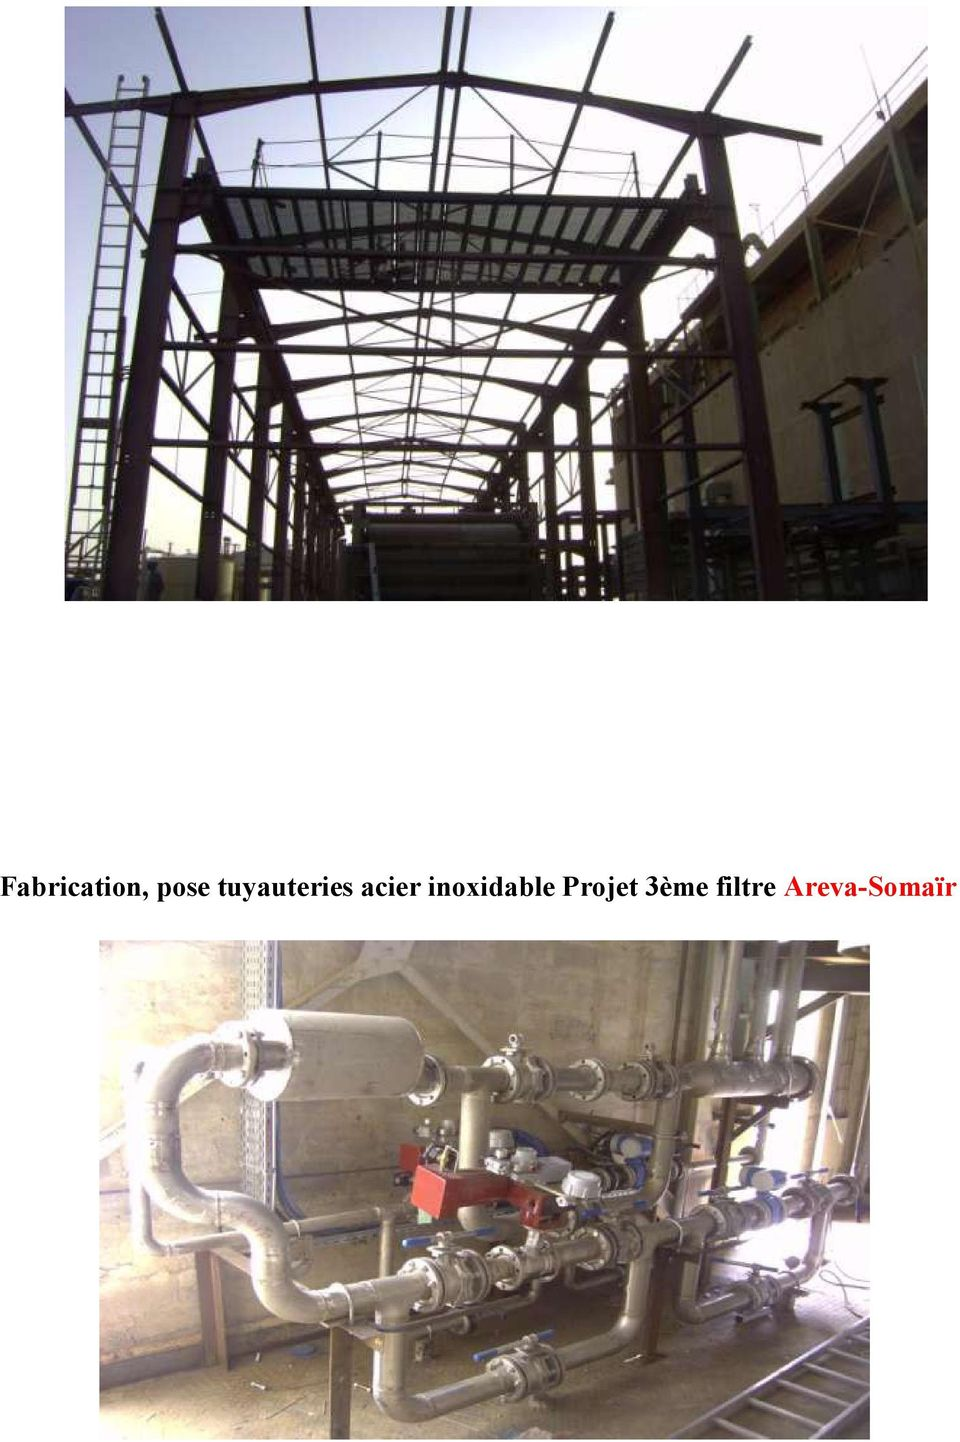 inoxidable Projet